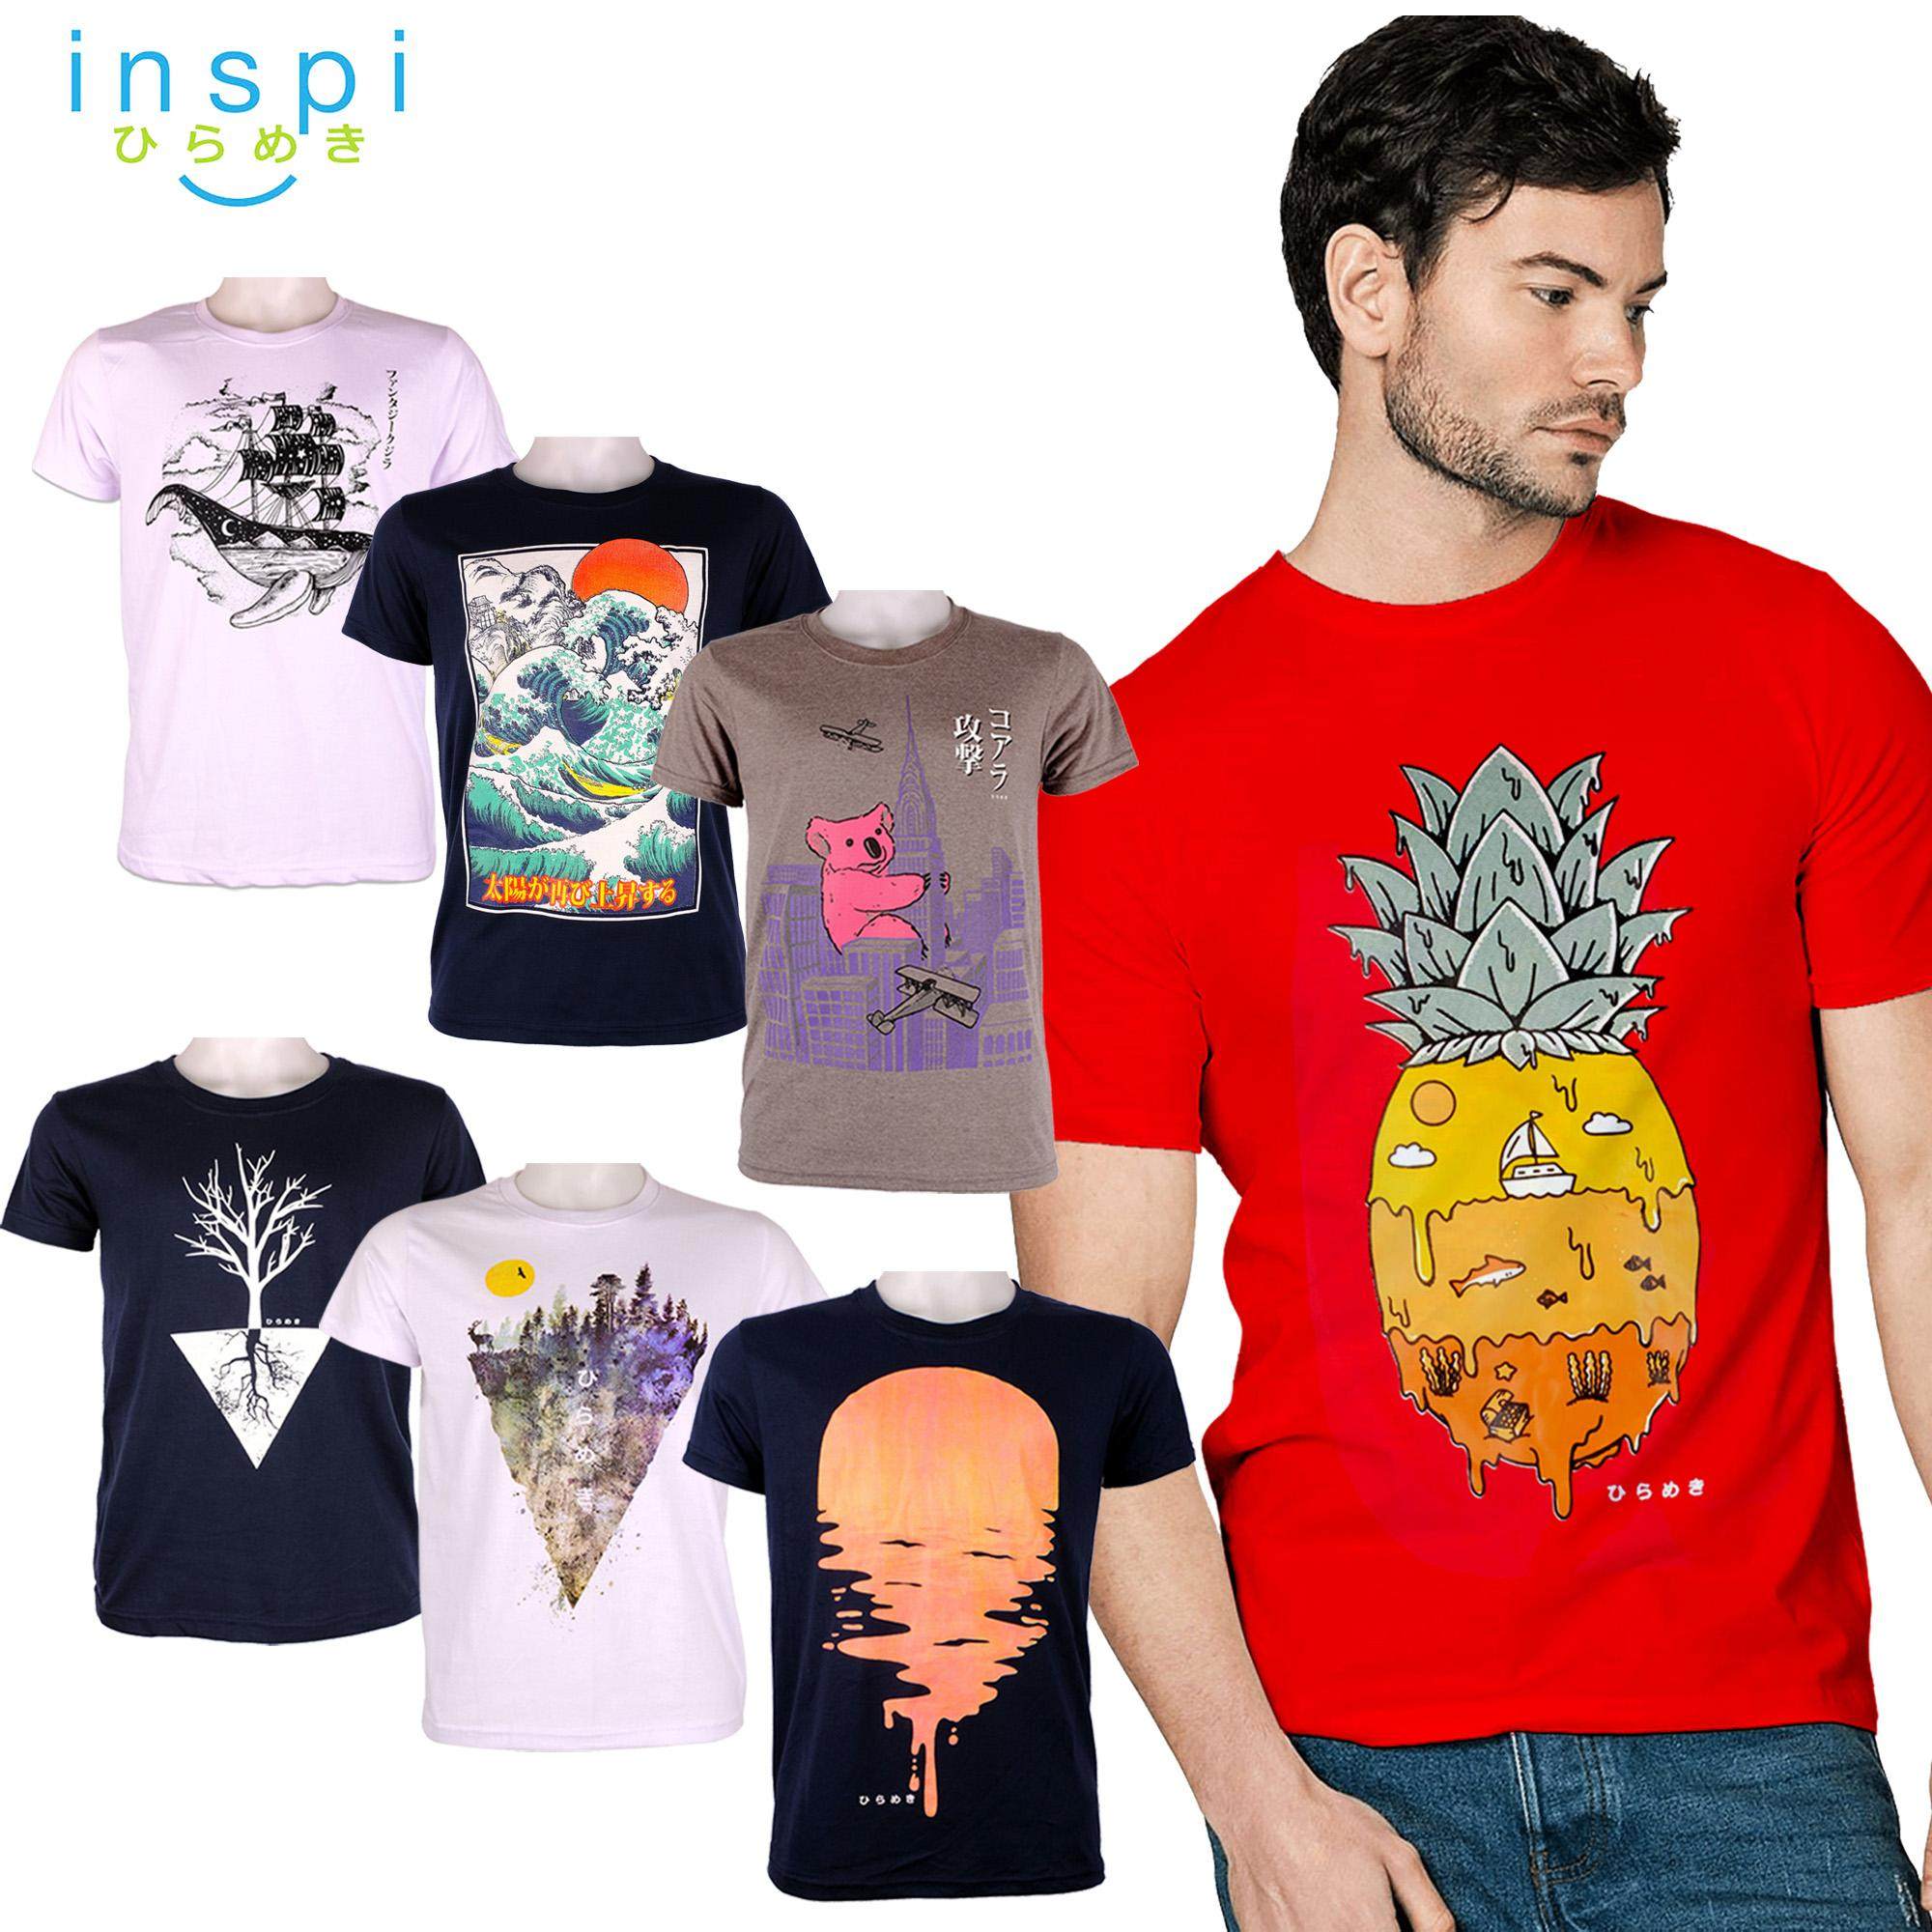 4a58db99e825 INSPI Tees Nature Collection tshirt printed graphic tee Mens t shirt shirts  for men tshirts sale